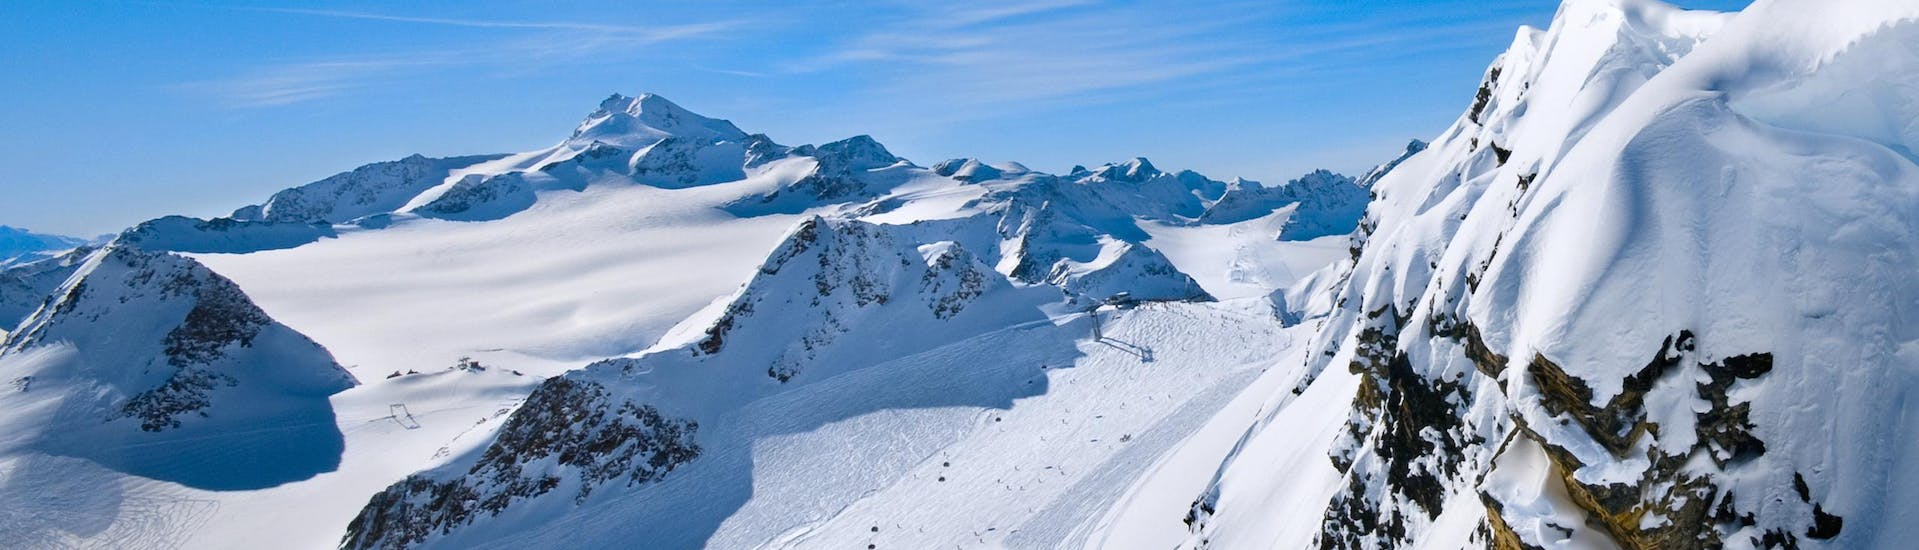 View of a snowy mountain top in a ski resort, in which Active Snow Team Engelberg carries out ski lessons.